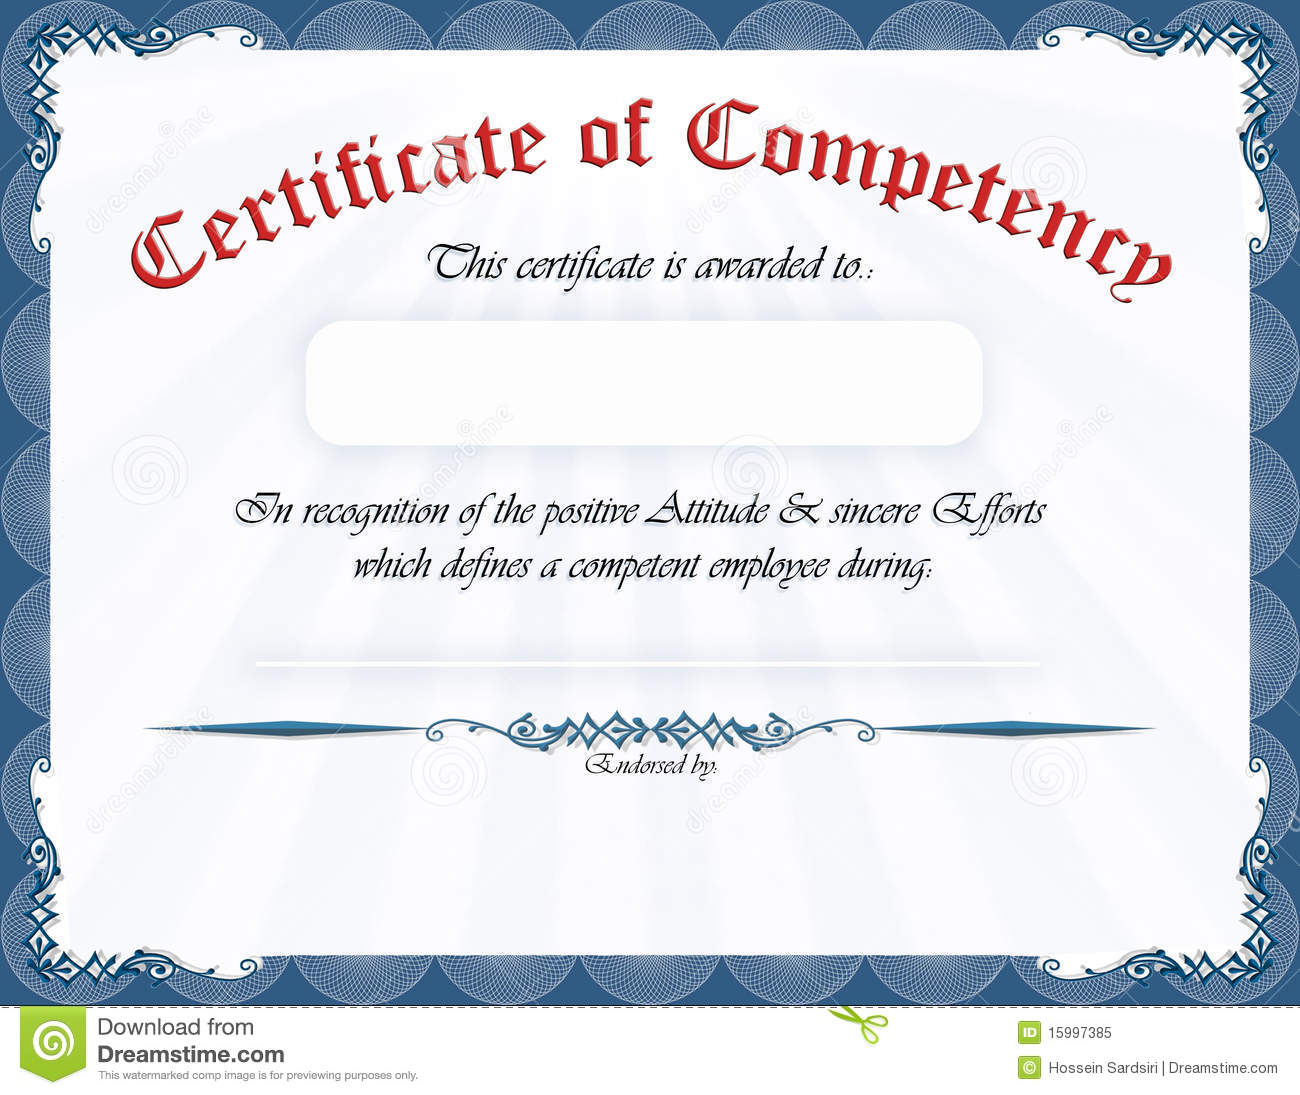 competency certificate template - certificate of competency stock illustration illustration